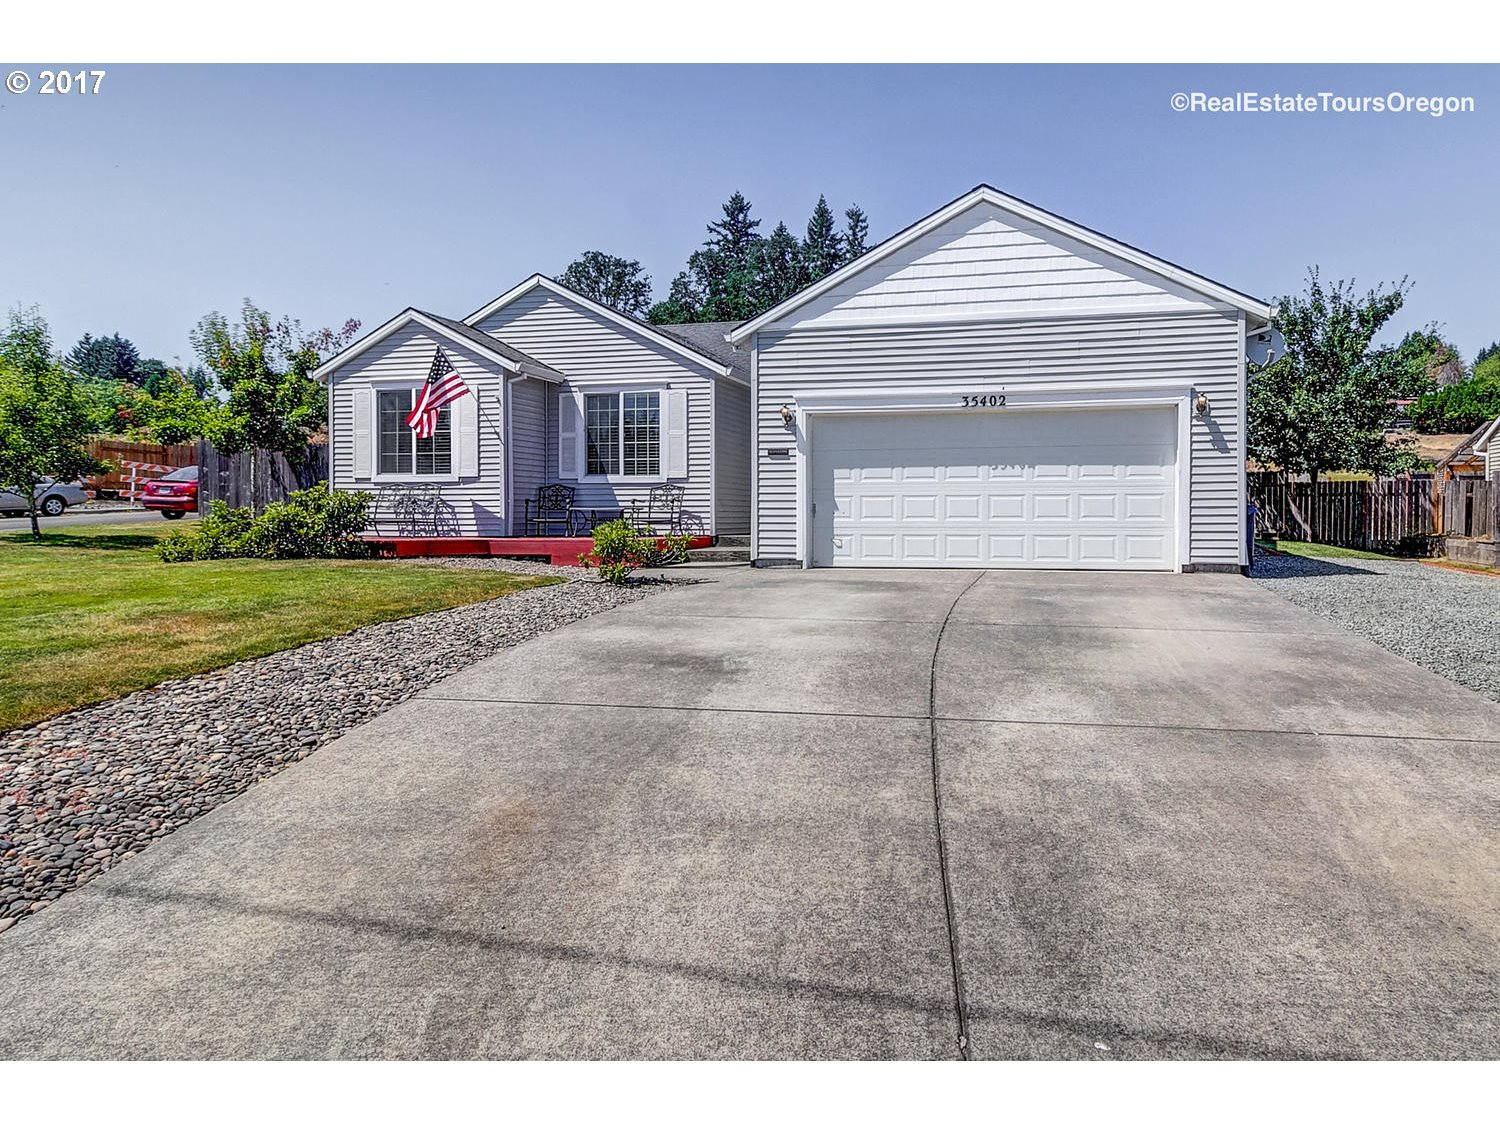 35402 HELENS WAY, St. Helens, OR 97051